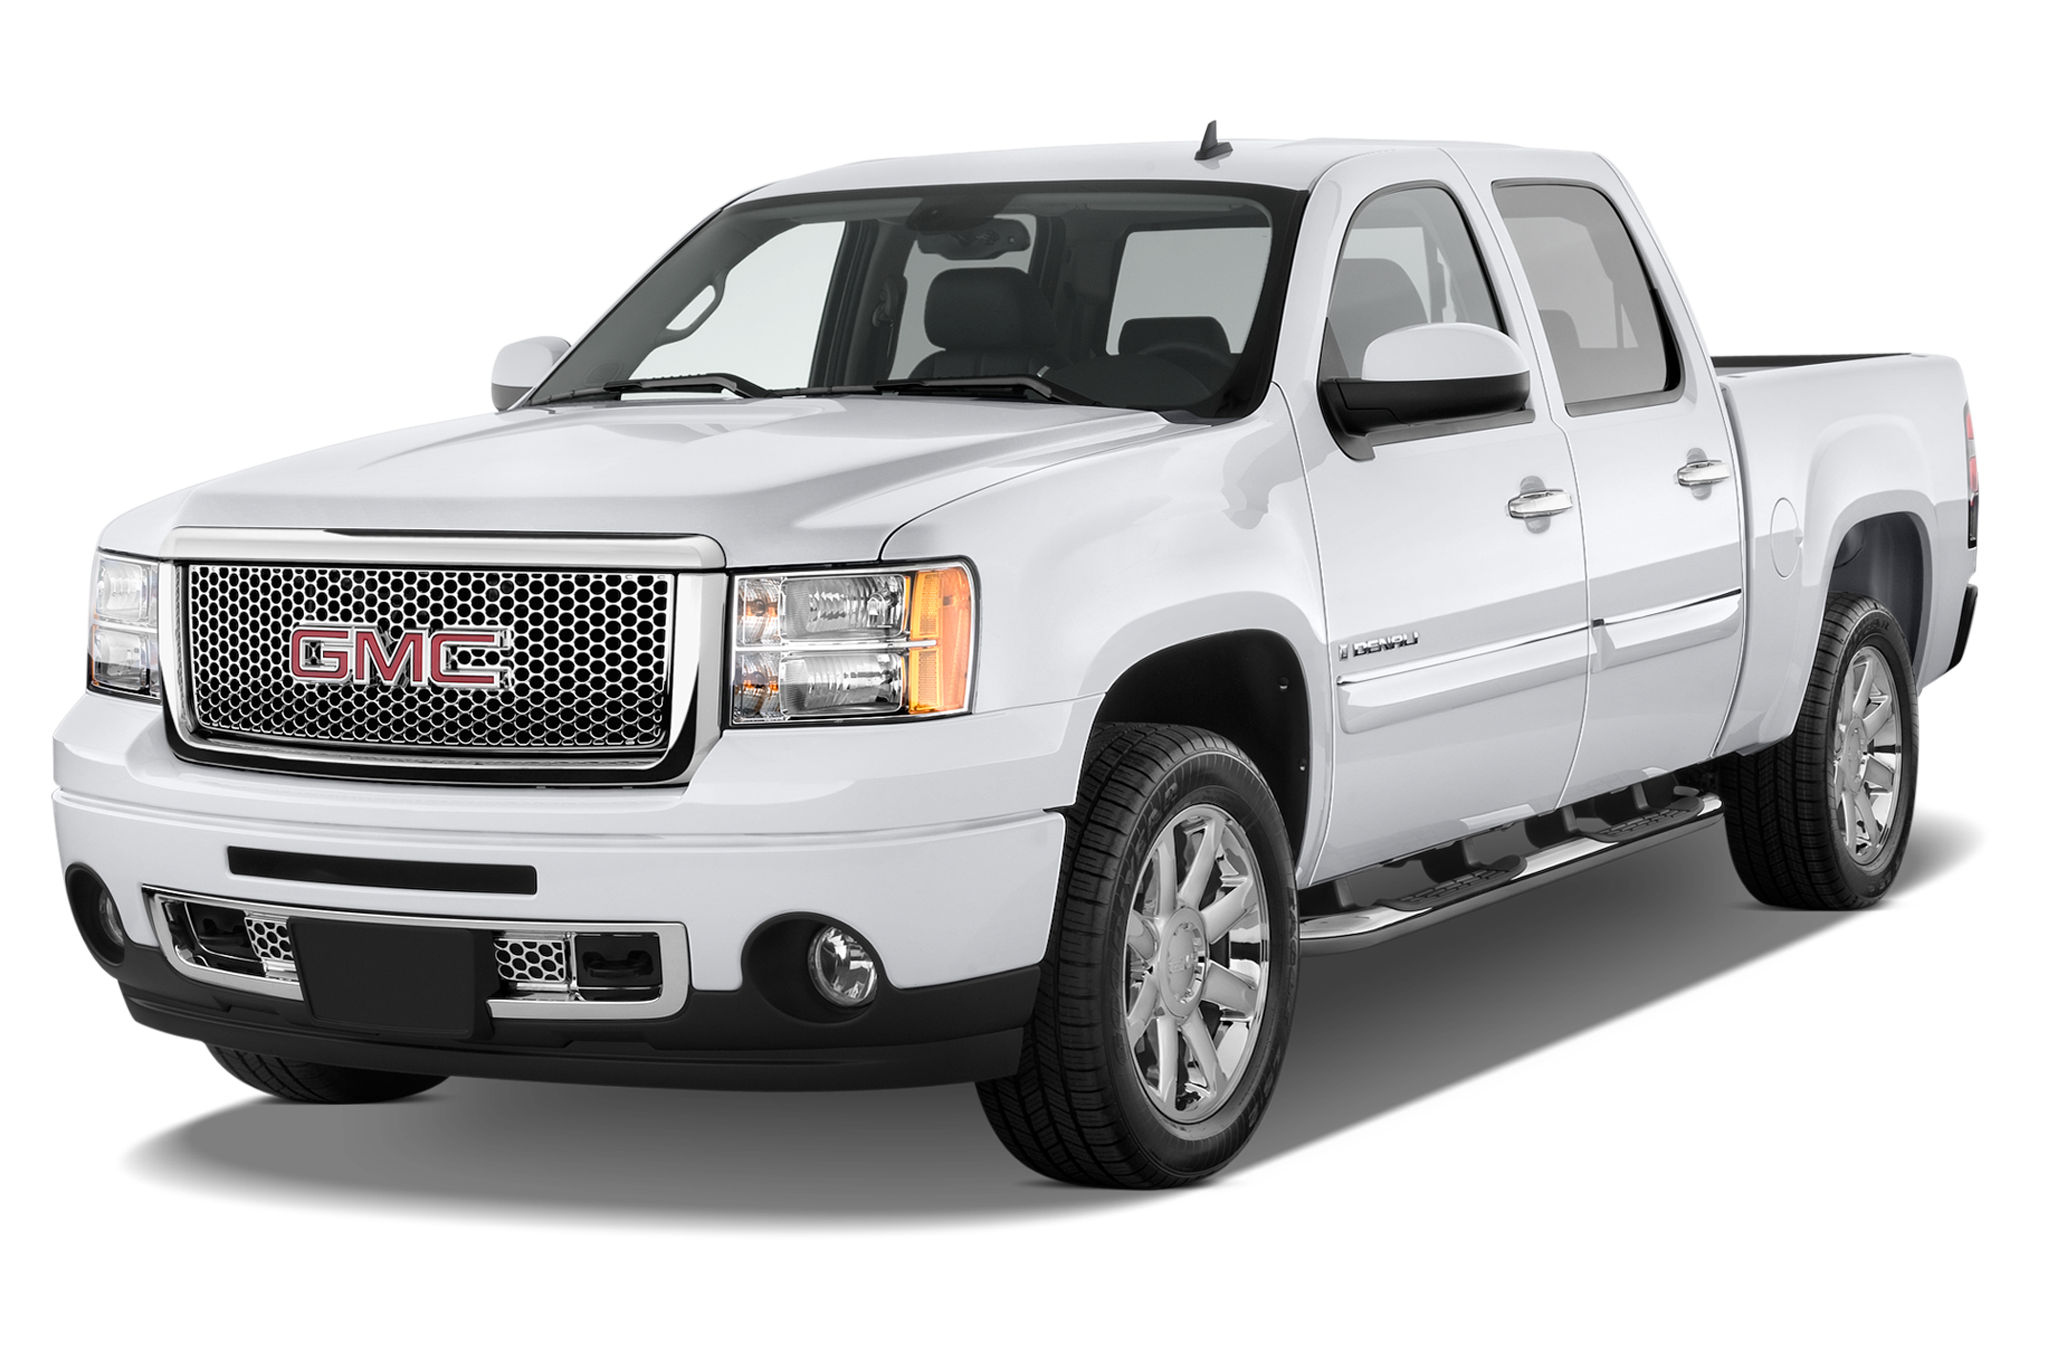 2011 gmc sierra 3500 hd crew cab slt 4x4 automobile magazine. Black Bedroom Furniture Sets. Home Design Ideas